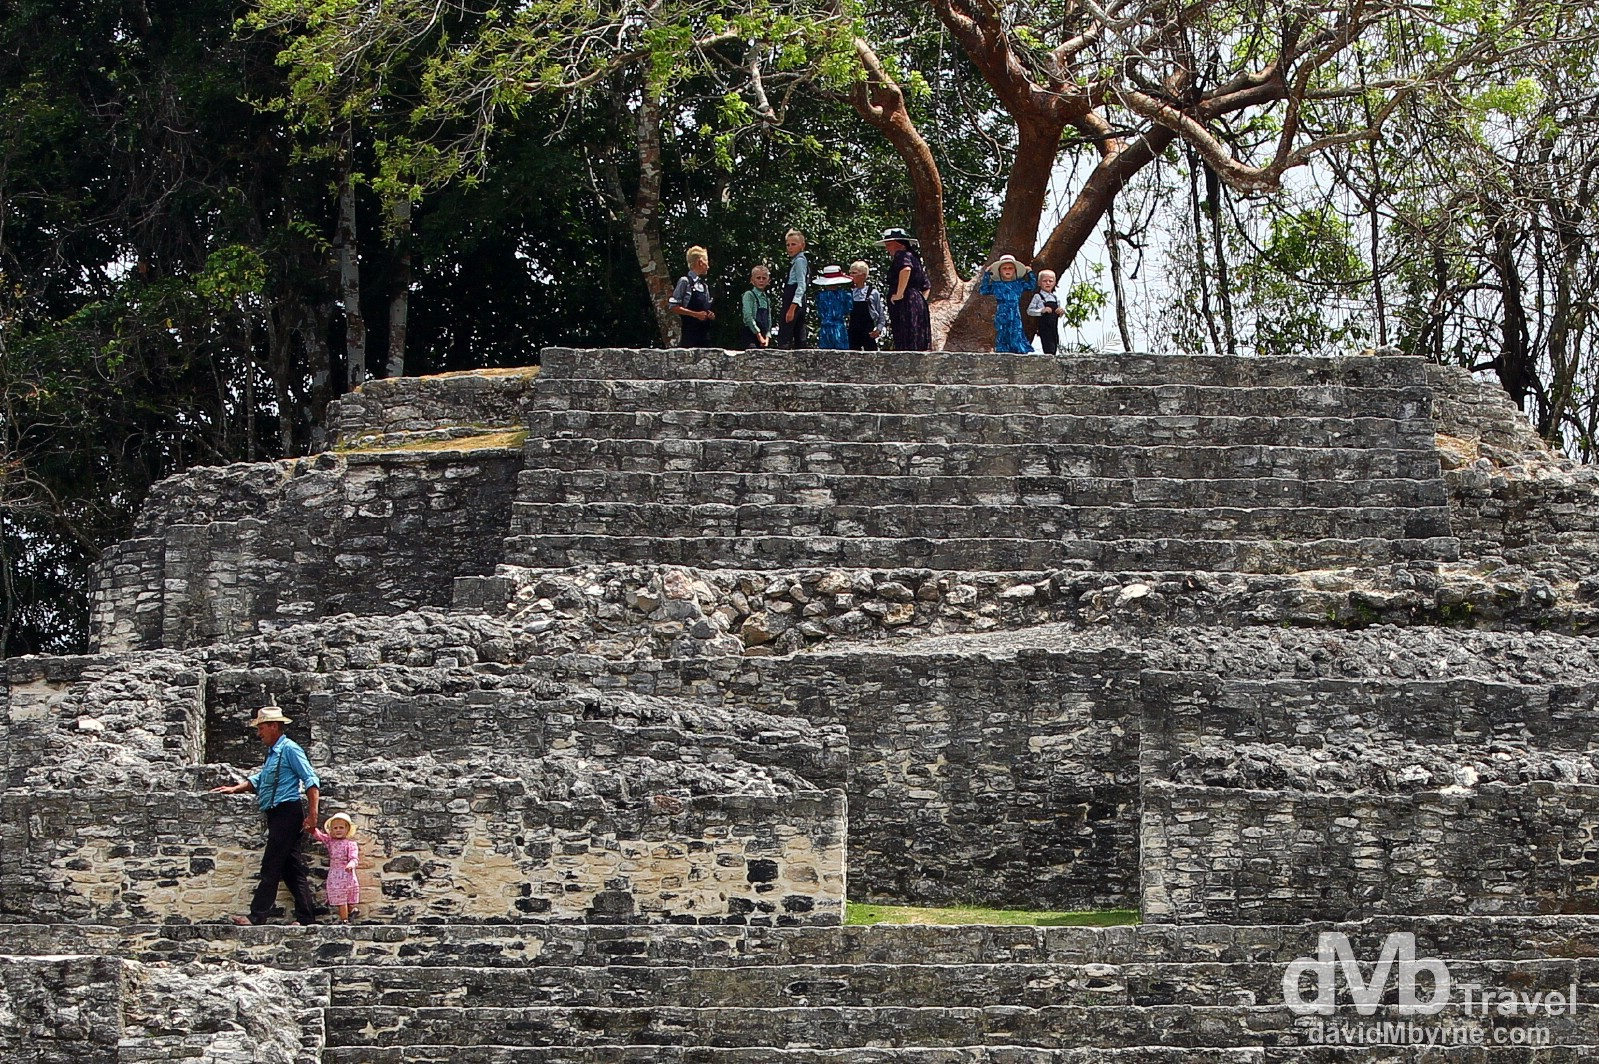 A Mennonite family on the Jaguar Temple at the Lamanai Mayan ruins in Central Belize. May 11th 2013.